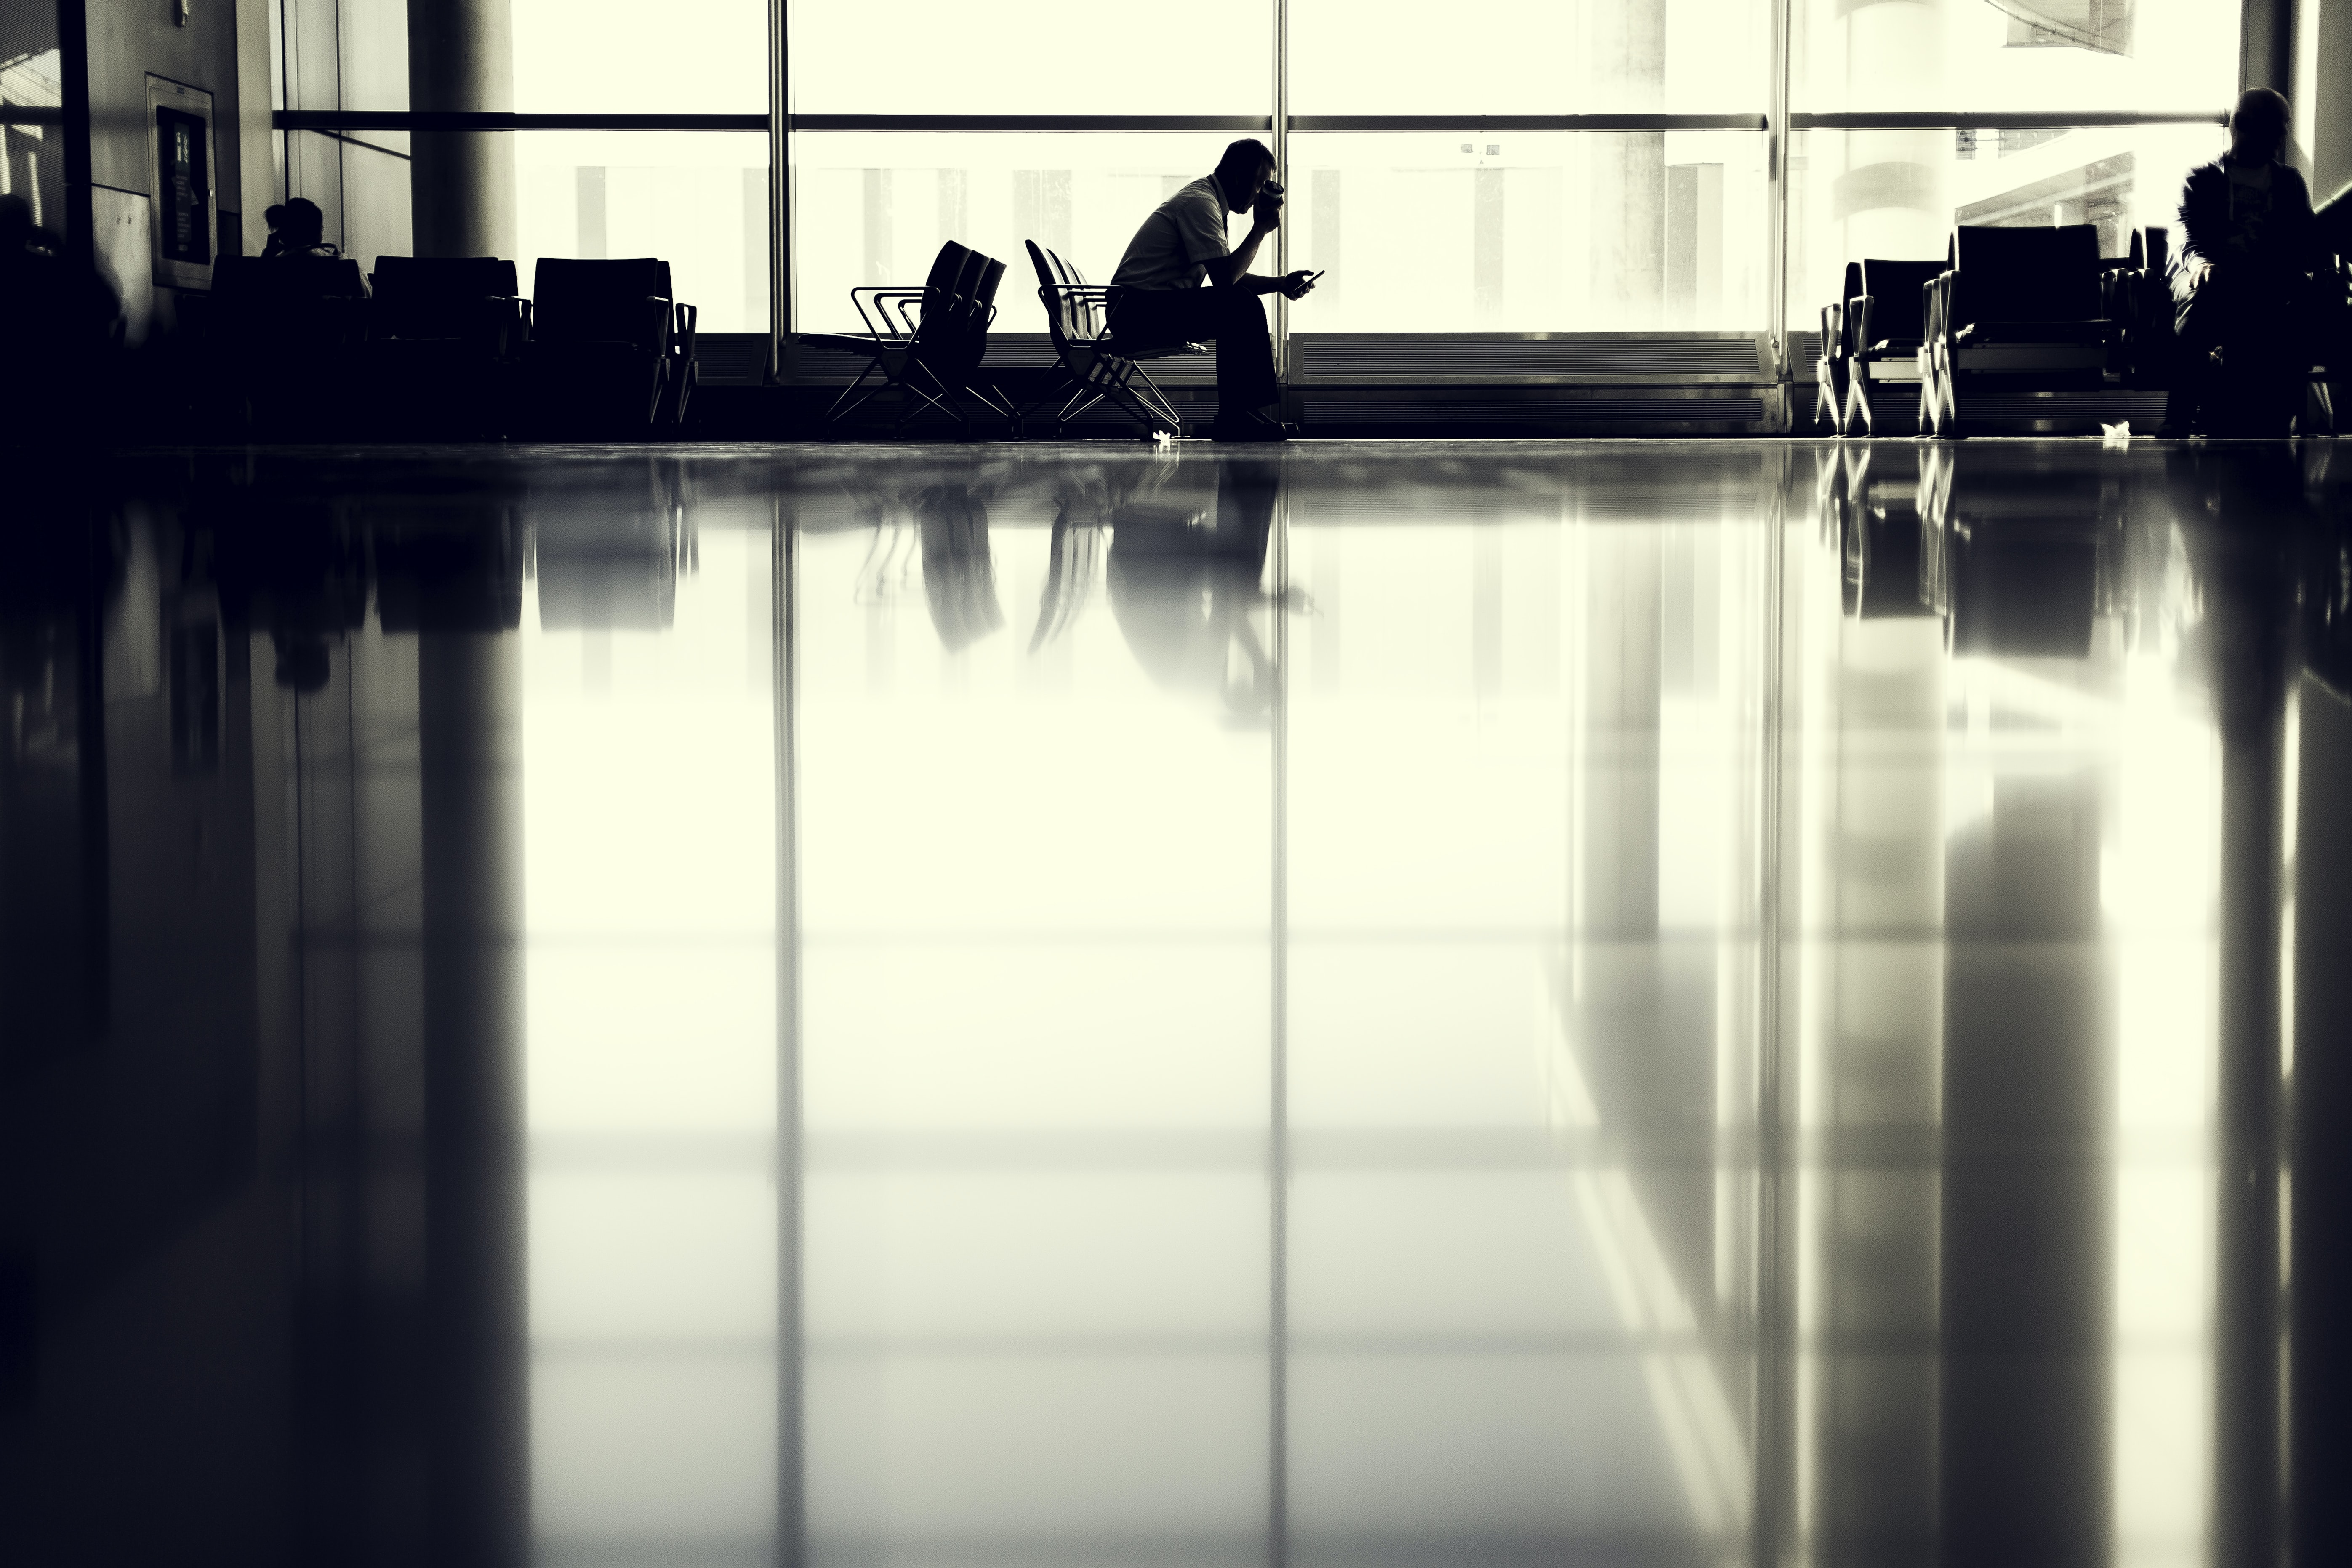 A man waiting in a chair at the airport